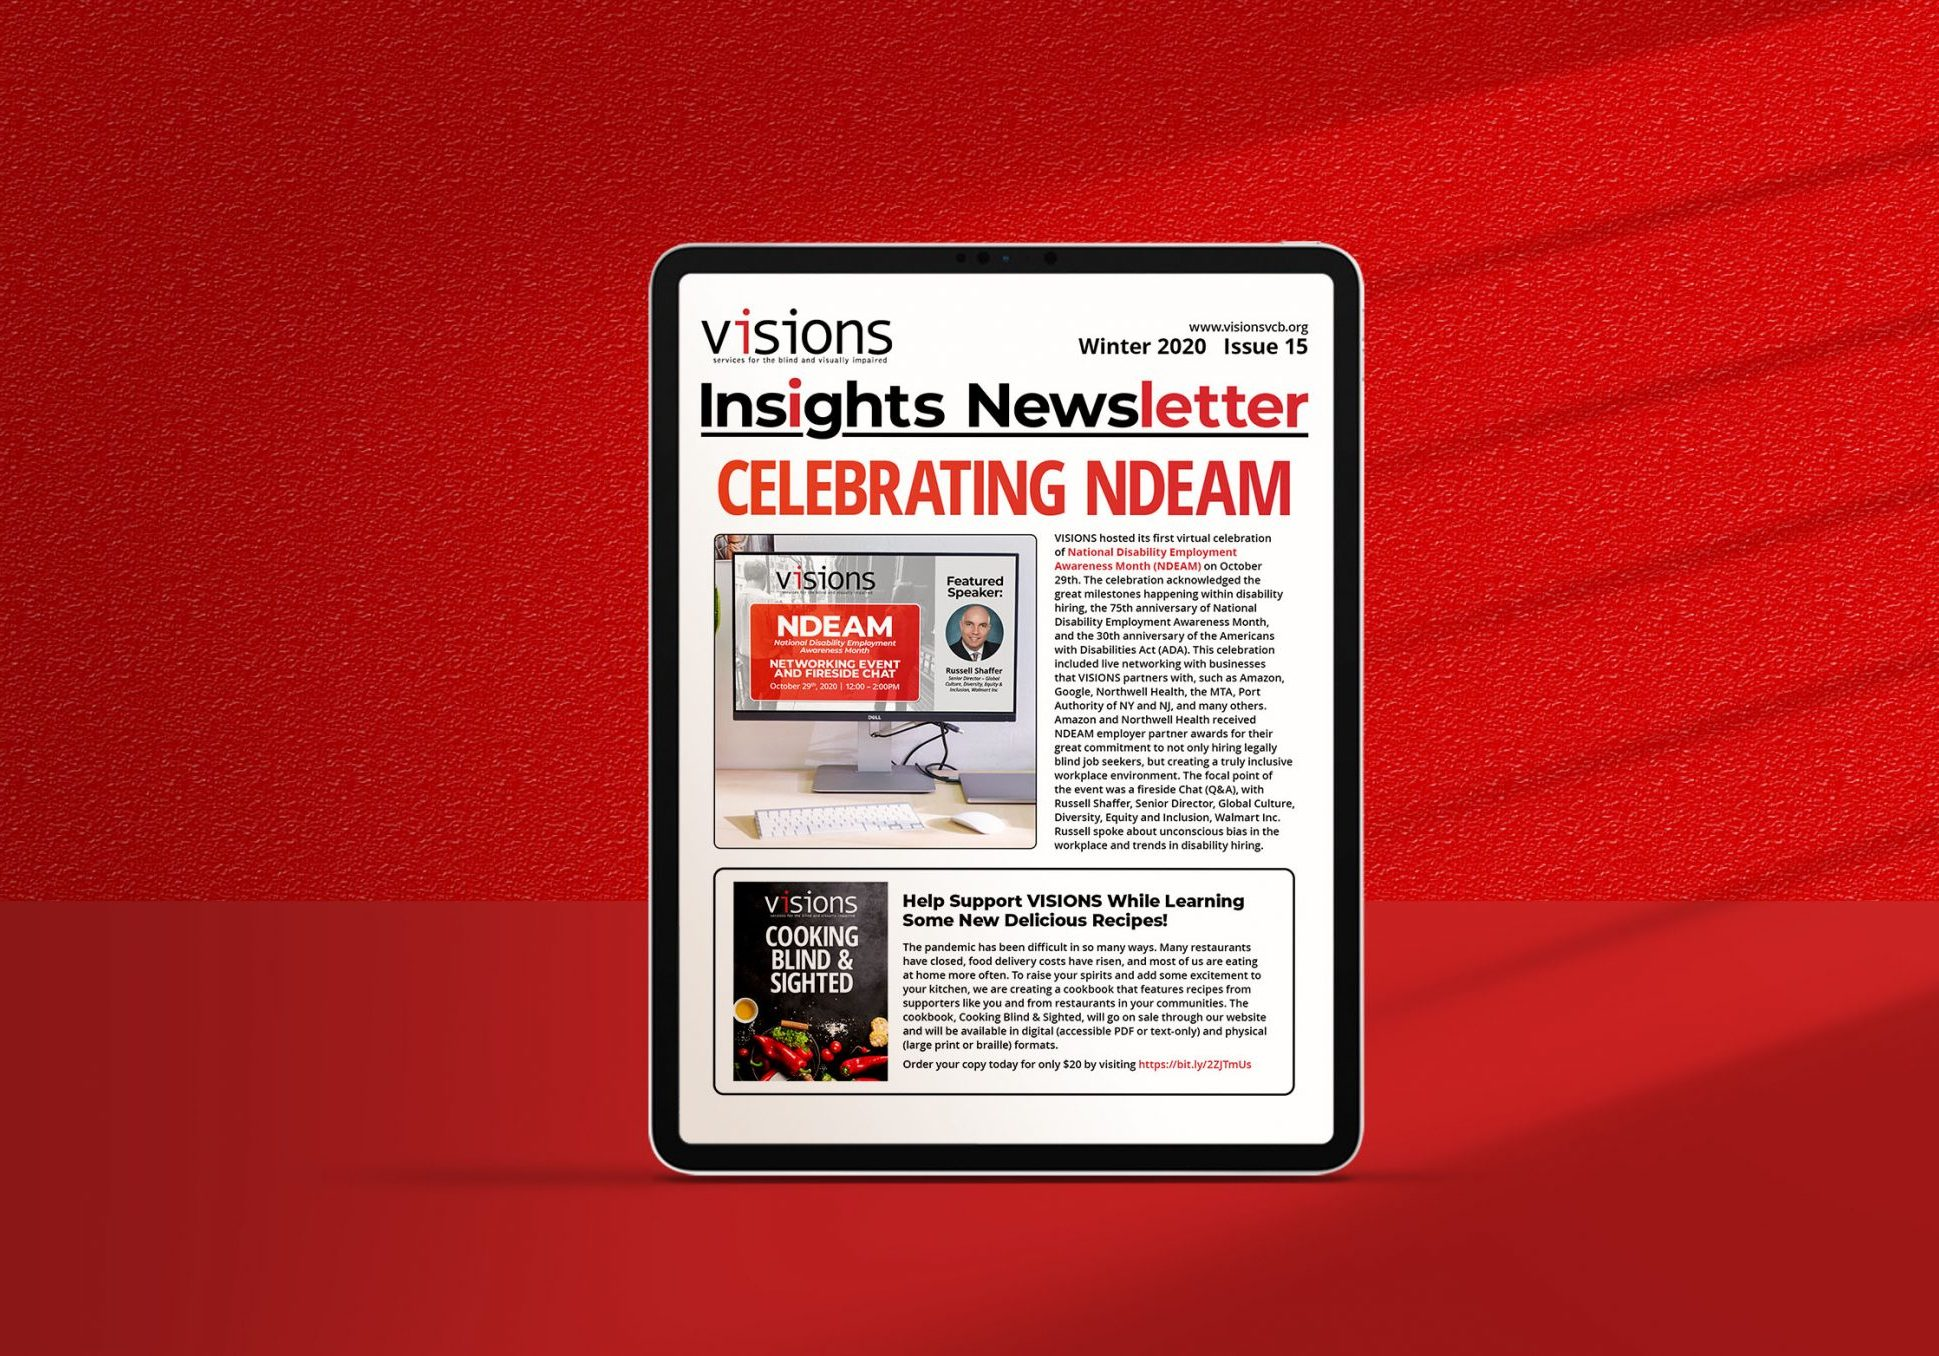 Graphic of the cover of VISIONS Insights newsletter on an iPad.